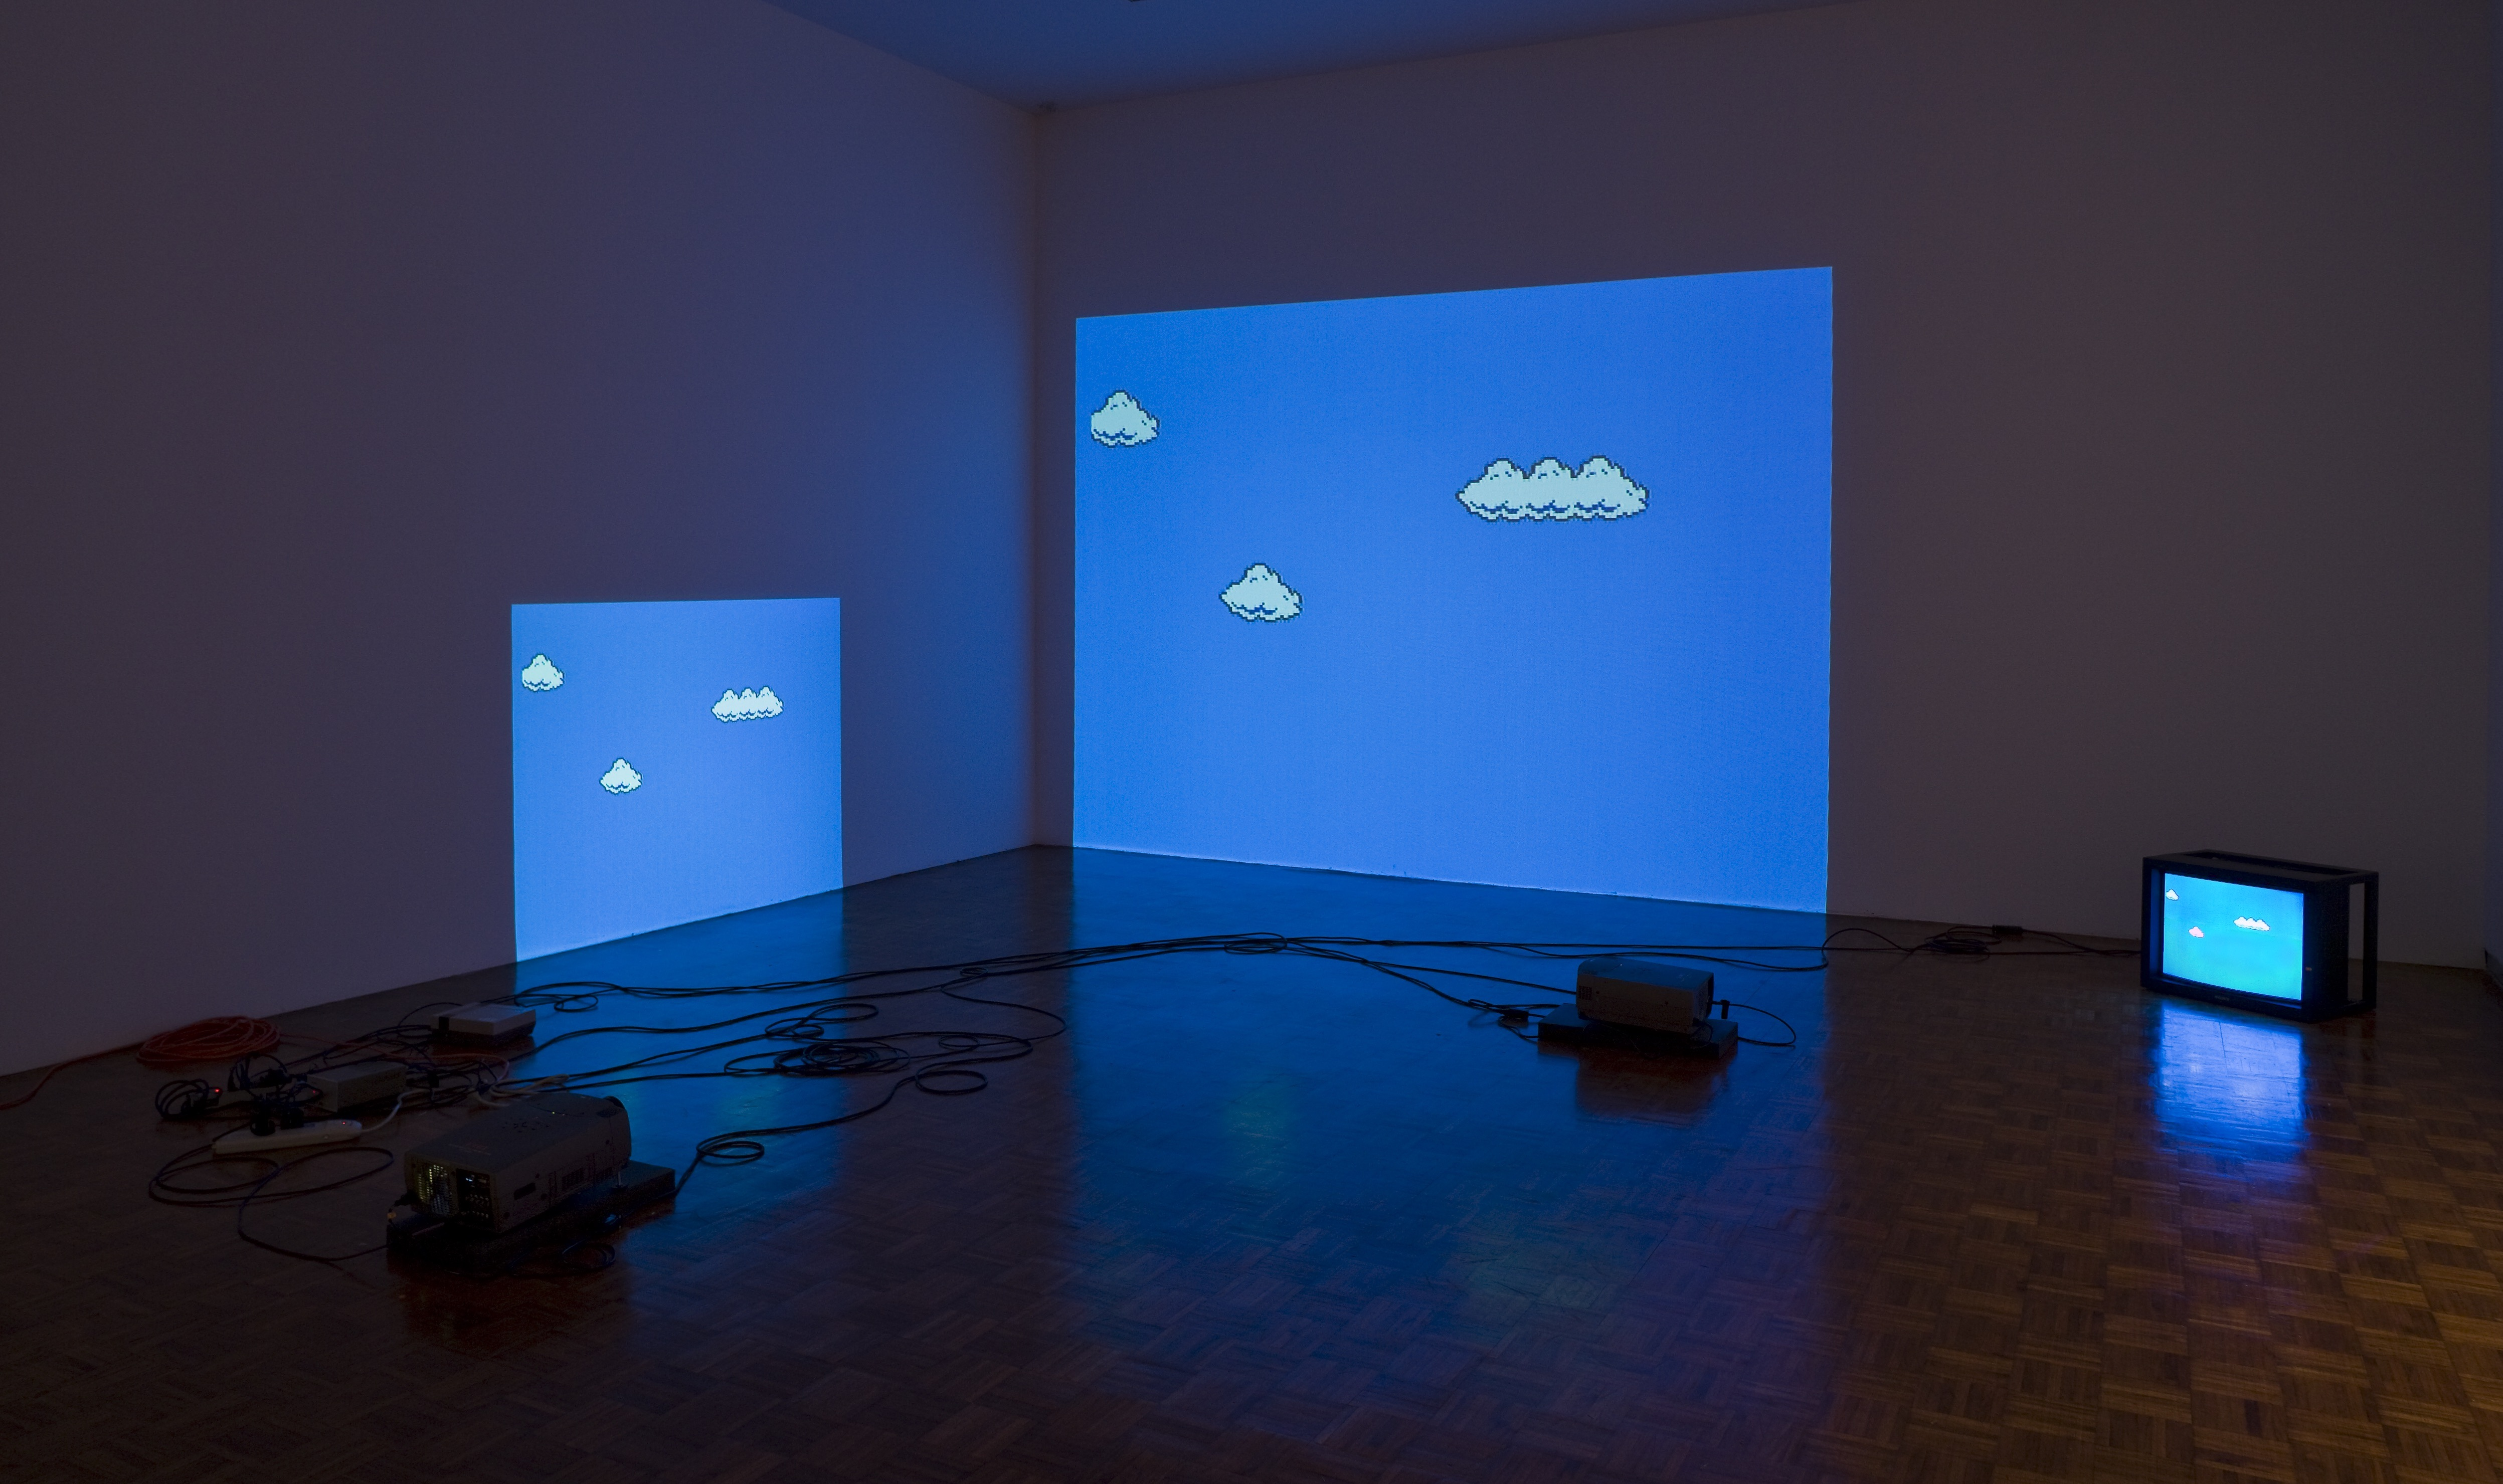 Figure 1. Cory Arcangel. Super Mario Clouds, 2002– . (Installation view, Synthetic, Whitney Museum of American Art, 2009.) Handmade hacked Super Mario Brothers cartridge and Nintendo NES video game system. Edition no. 2/5. Whitney Museum of American Art, New York; purchase with funds from the Painting and Sculpture Committee 2005.10.© Cory Arcangel. Courtesy of Cory Arcangel.